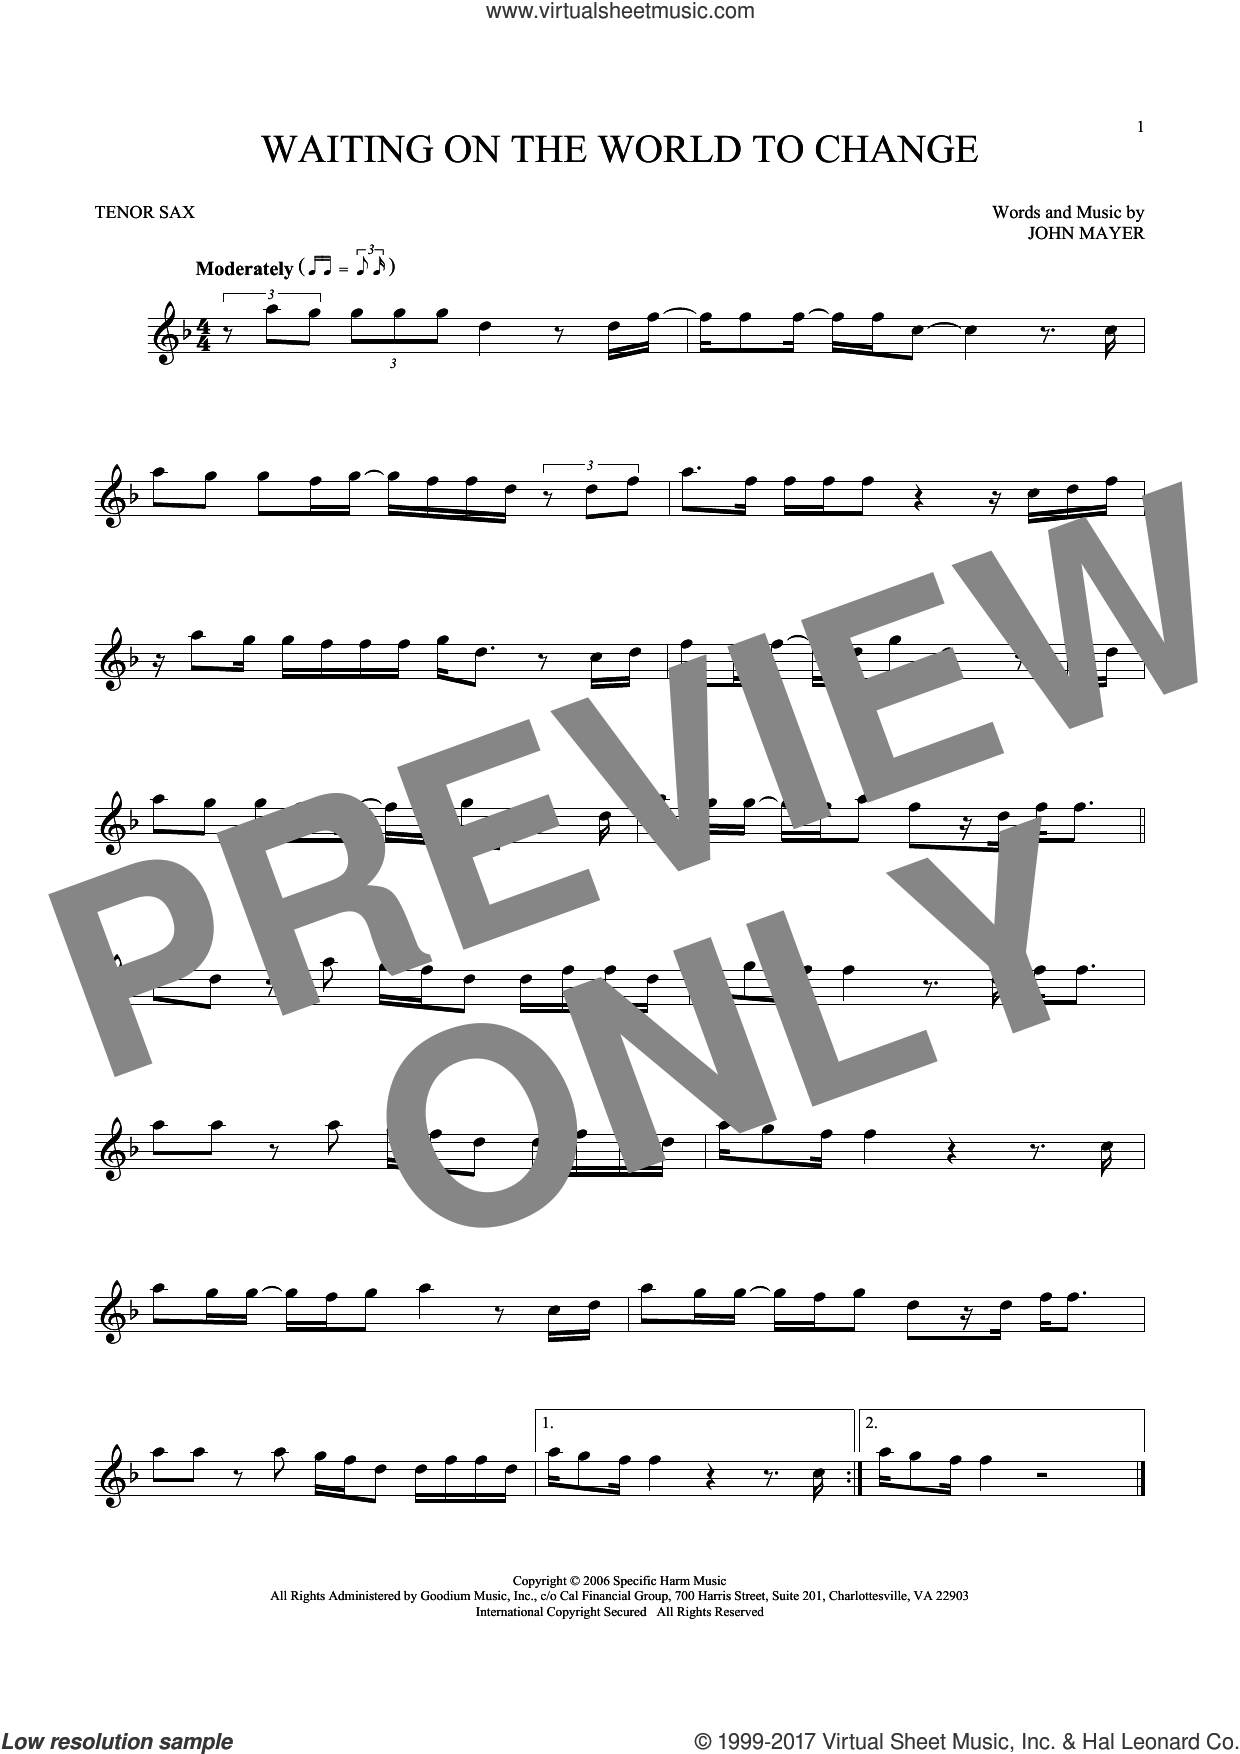 Waiting On The World To Change sheet music for tenor saxophone solo ( Sax) by John Mayer. Score Image Preview.